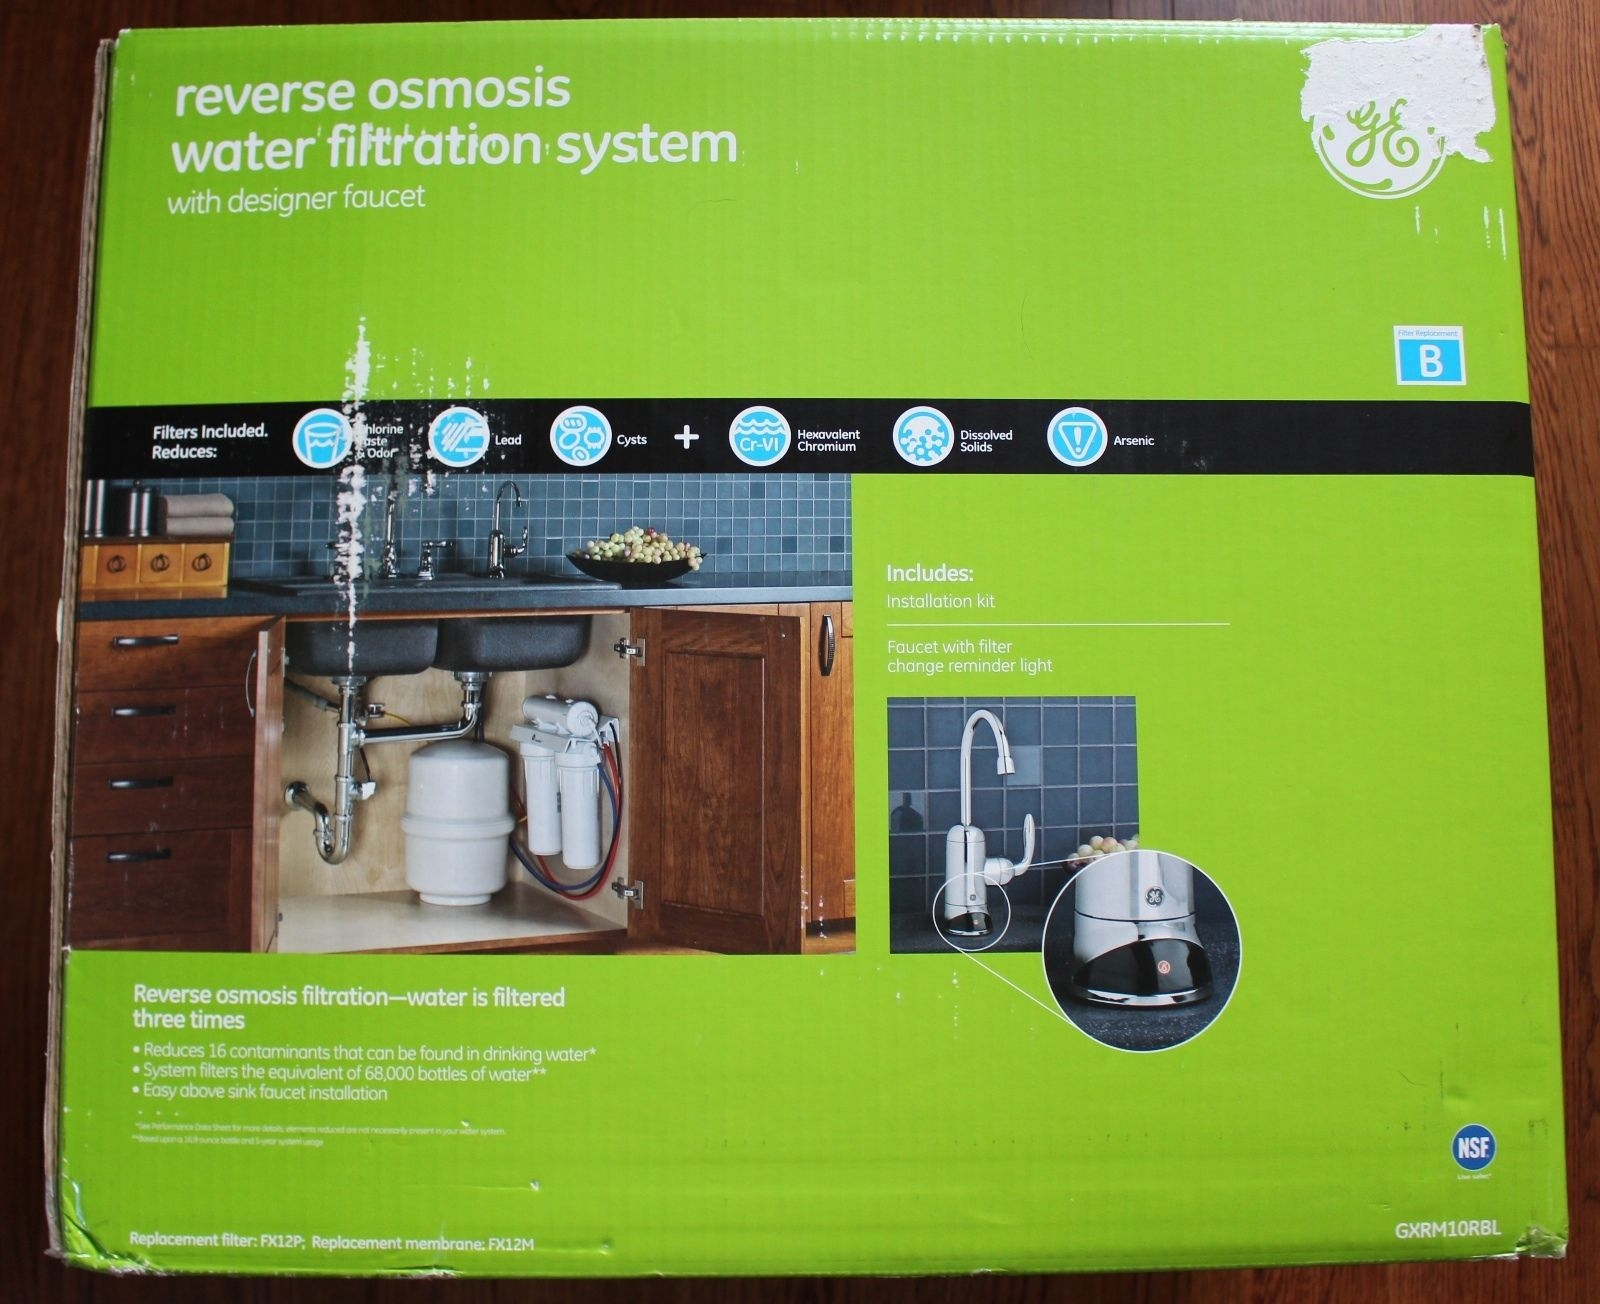 ge reverse osmosis water filtration system with design faucet ge reverse osmosis water filtration system with design faucet new ge ro reverse osmosis water filtration system gxrm10rbl with 1600 x 1304